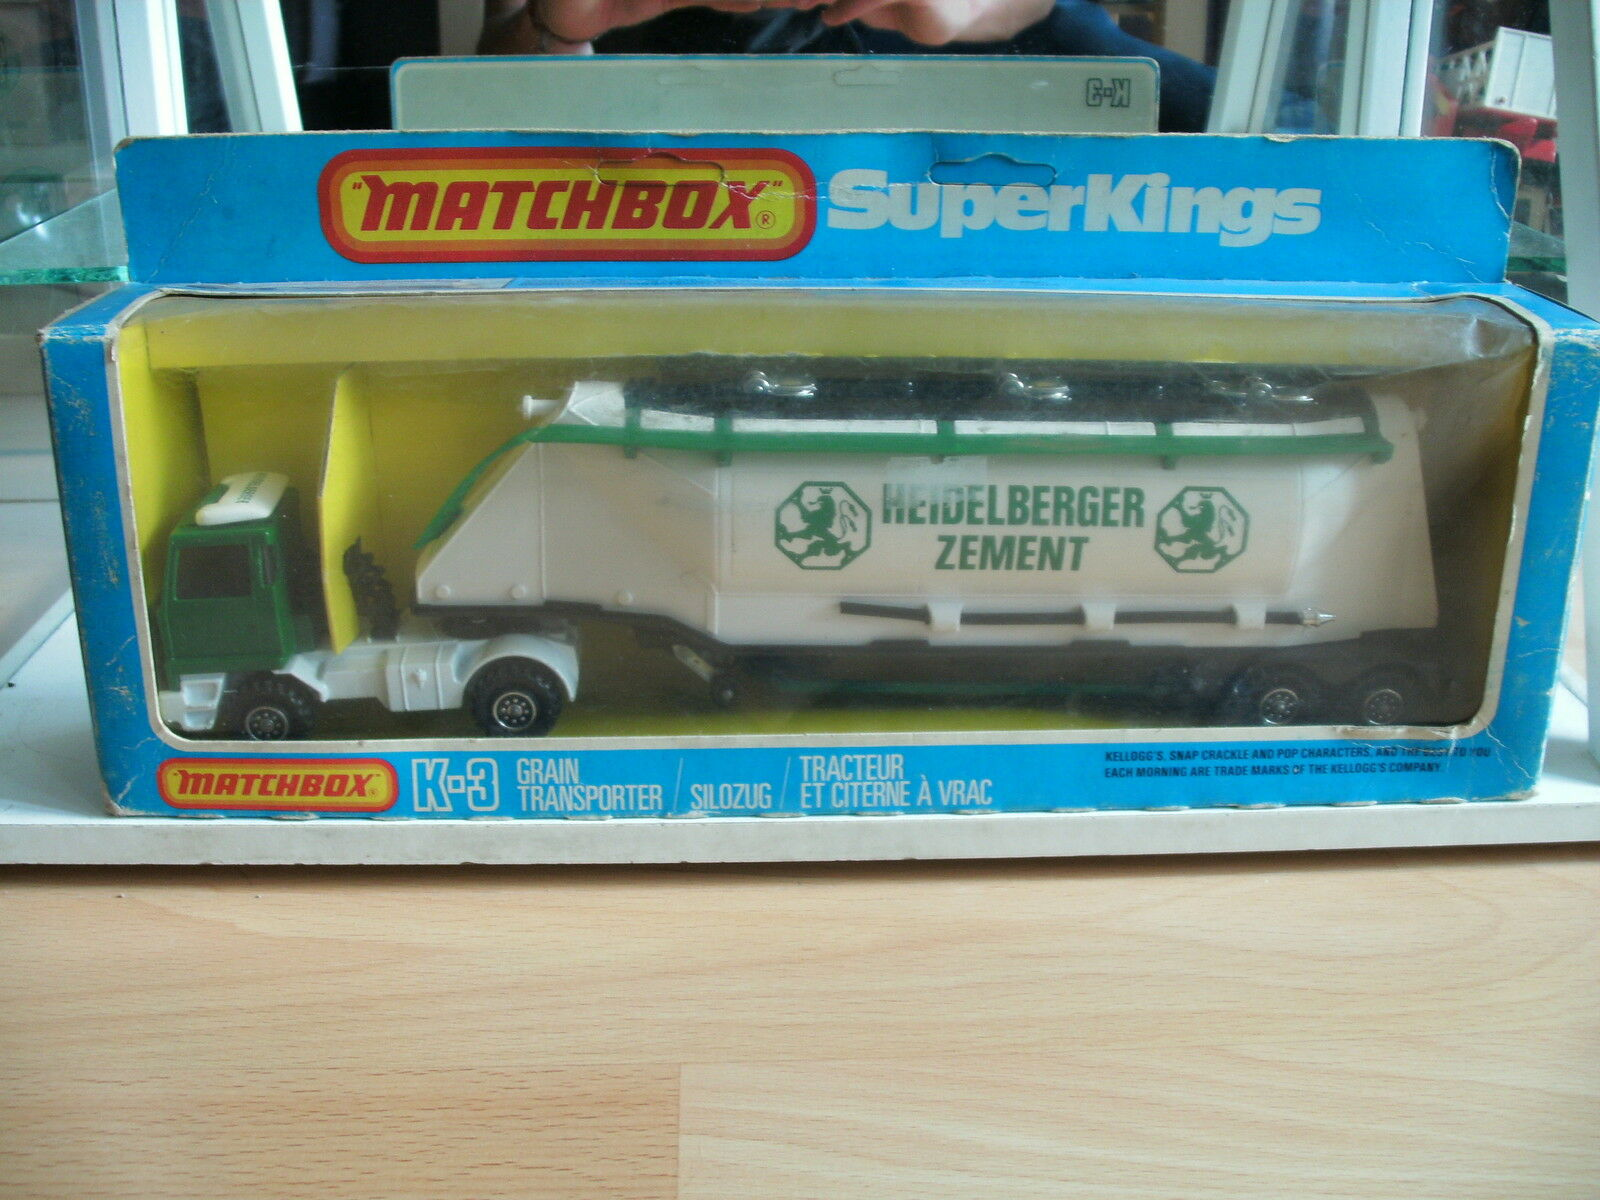 Matchbox Super Kings Grain Transporter  Heidelberger Zement  in White Green Box